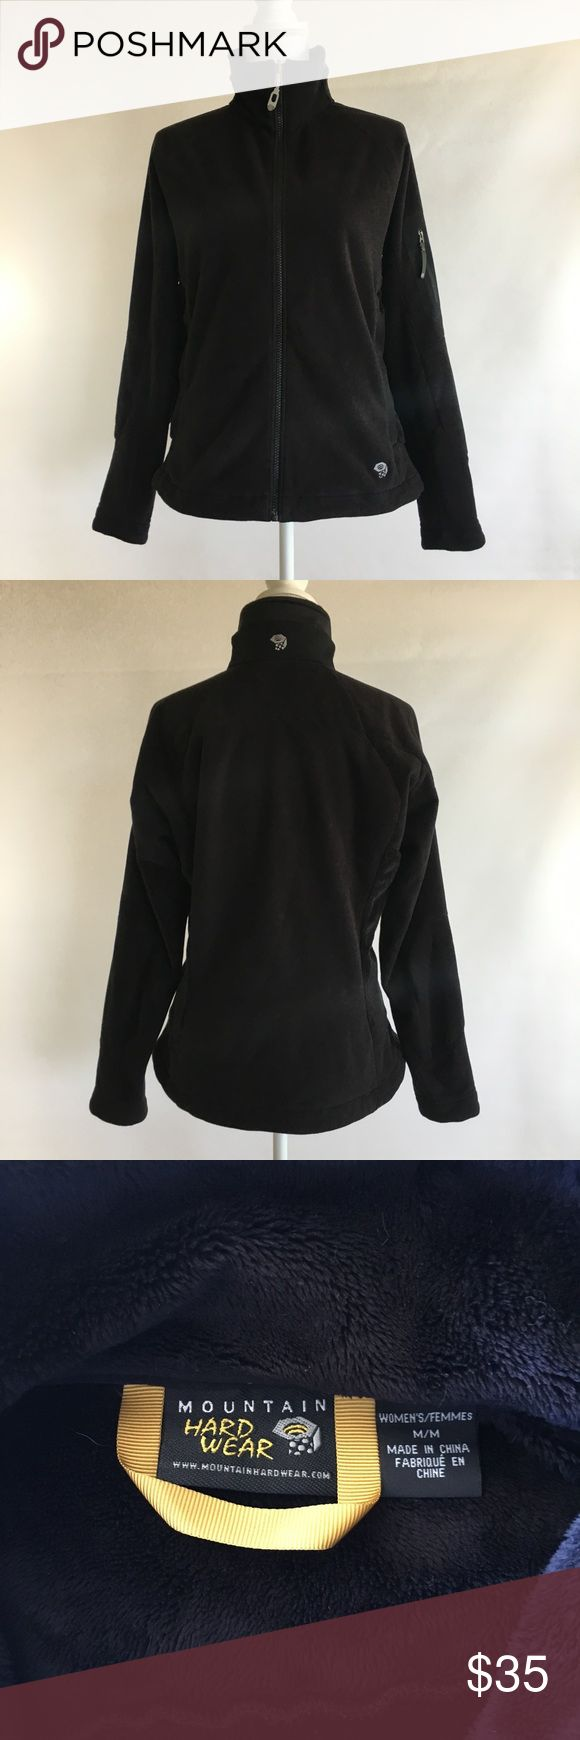 """Mountain Hardwear Women's m black fleece jacket Mountain Hardwear womens medium black fleece jacket The outside is mostly a thin pile fleece, the inside is thicker pile.  The sides have a thicker pile as well. The jacket is in great condition- no stains tears or holes and the fleece looks very nice, not overworn.  Zips down the front, zippered hand pockets at sides, one zippered arm pocket. Adjustable waist. Measurements: 22"""" across flat front of chest 26"""" in length from top of shoulder to…"""